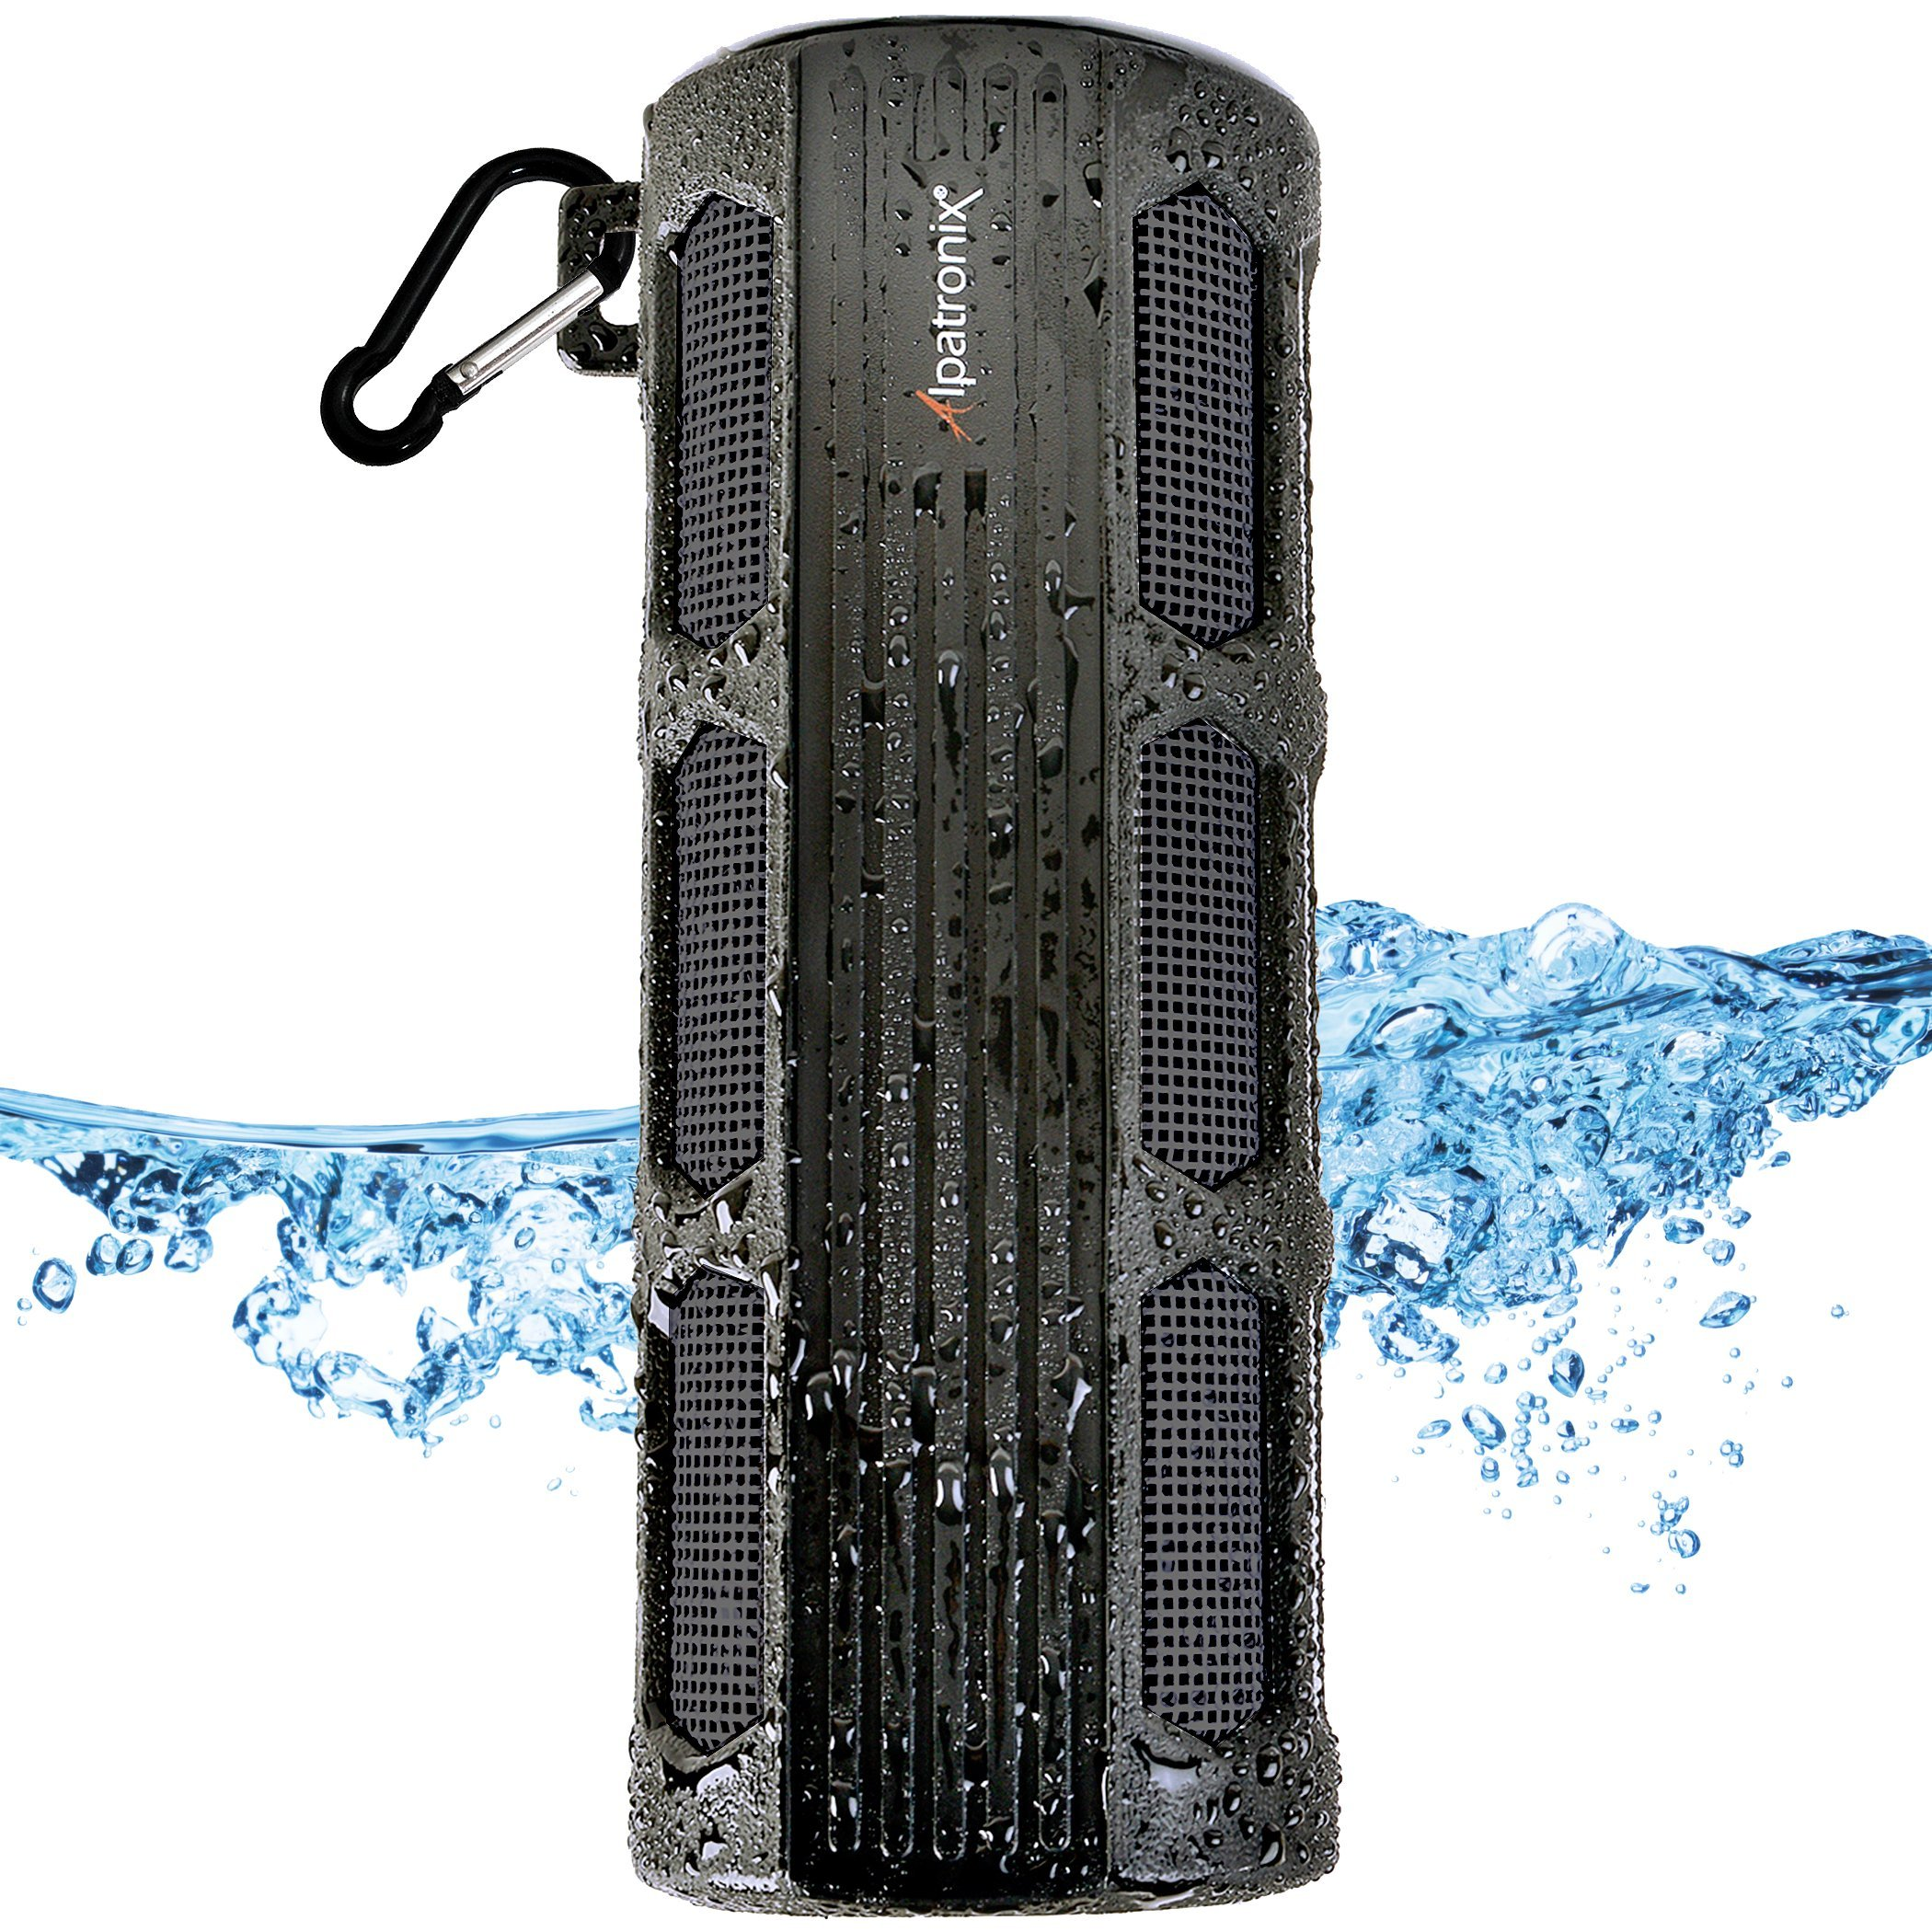 Waterproof Bluetooth Speaker, Alpatronix AX410 Portable Rugged Indoor/Outdoor 12 Watt Stereo Shockproof Wireless Speaker with Mic, Subwoofer & Carabiner for Cyclists, Smartphones & Computers - Black